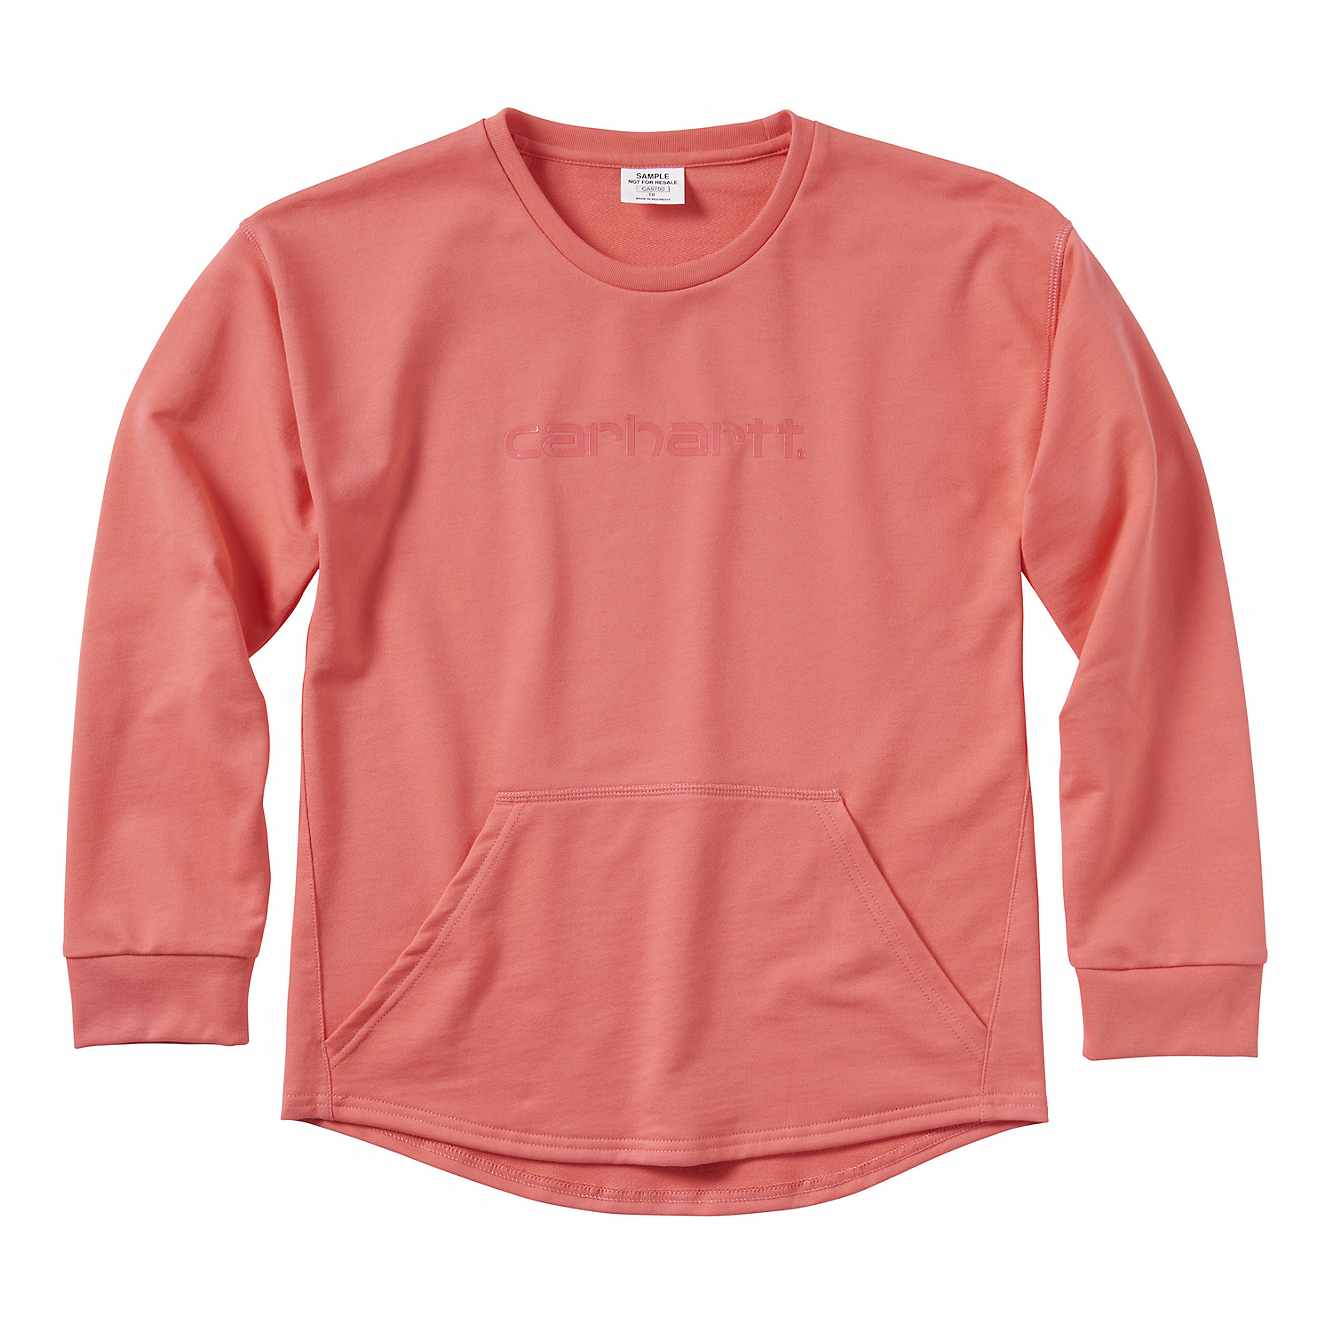 Picture of French Terry Sweatshirt in Calypso Coral